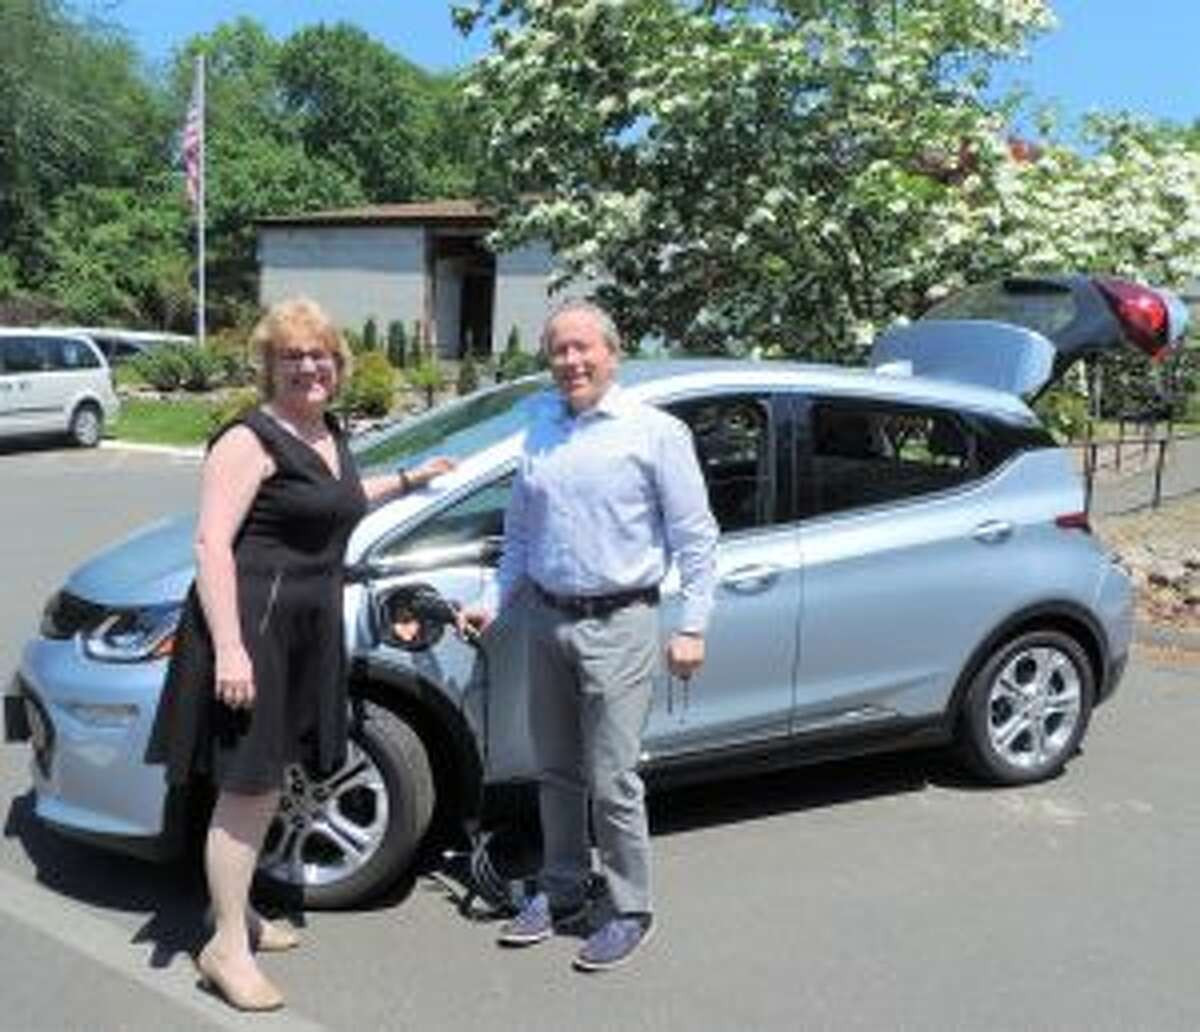 New Canaan: STAR's new electric car are among steps to leverage resources. Katie Banzhaf, executive director, STAR, Inc., left, and Leo Karl, III, president of Karl Chevrolet, are shown with the car. - Contributed photo